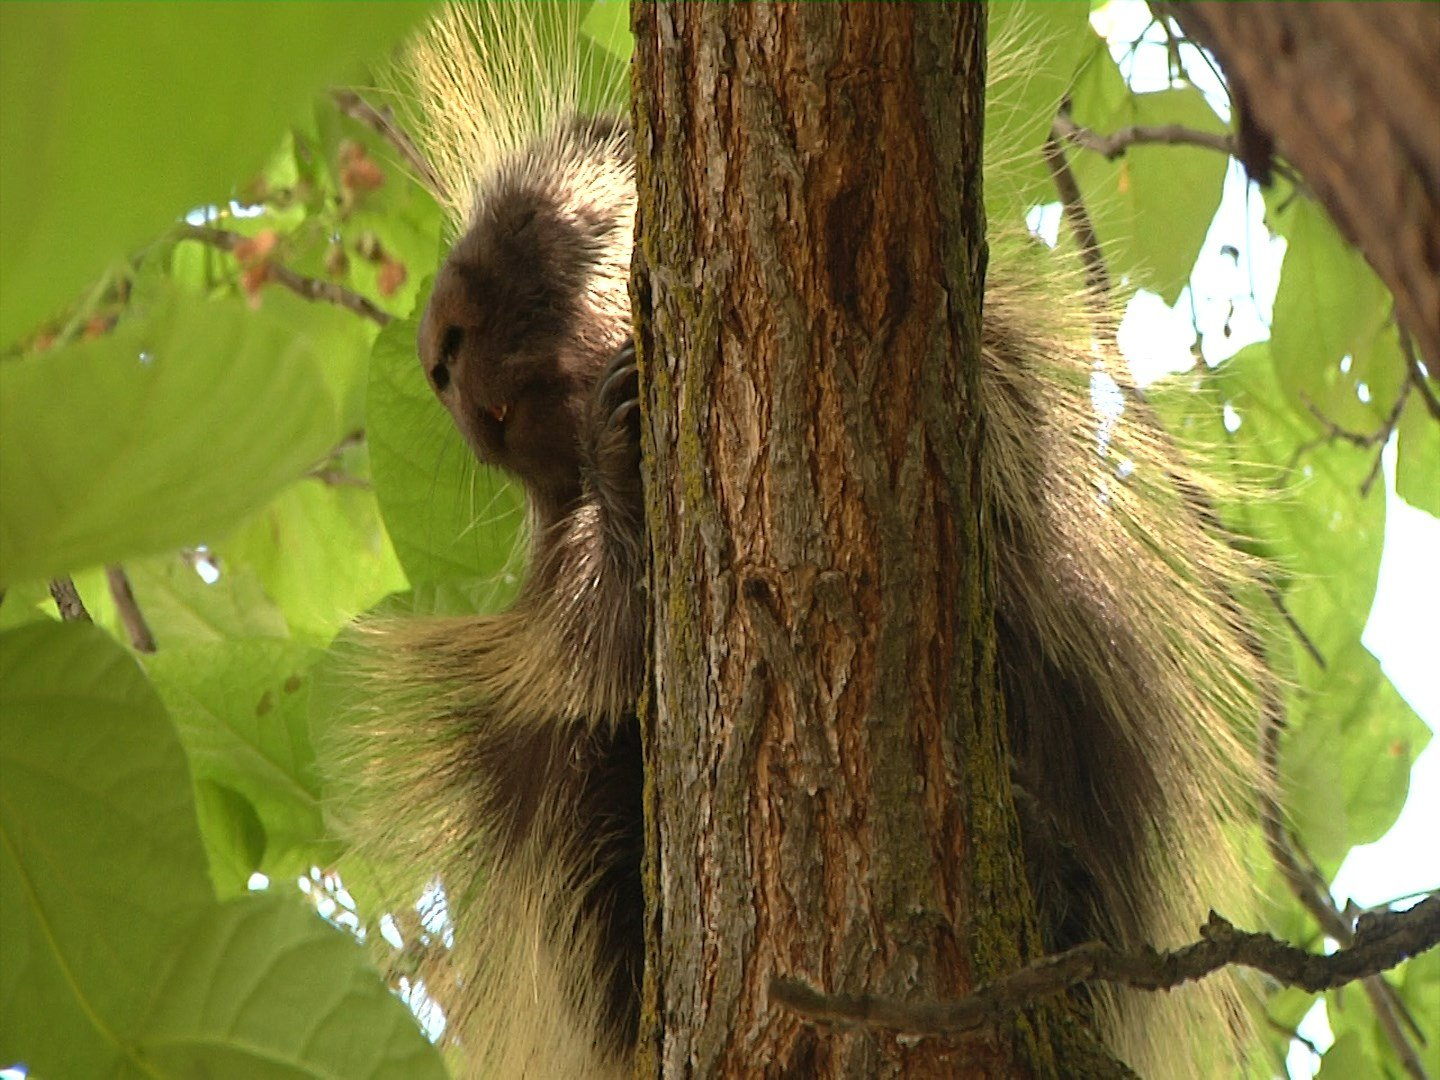 A porcupine hangs out in a tree on the corner of Lincoln Avenue and 9th Street in Yakima